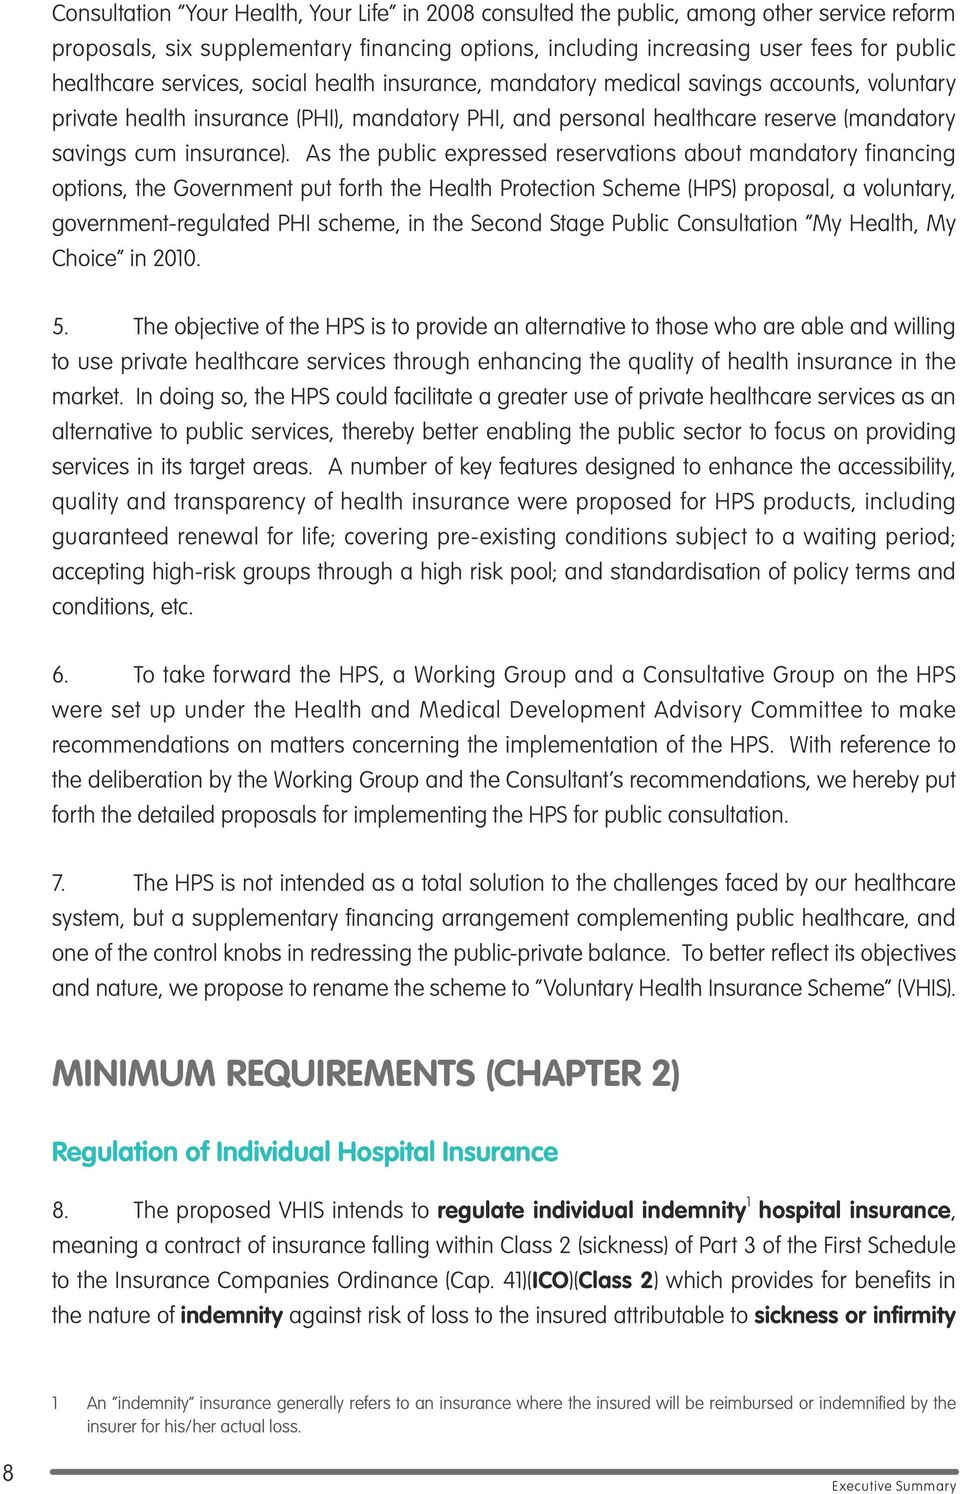 As the public expressed reservations about mandatory financing options, the Government put forth the Health Protection Scheme (HPS) proposal, a voluntary, government-regulated PHI scheme, in the